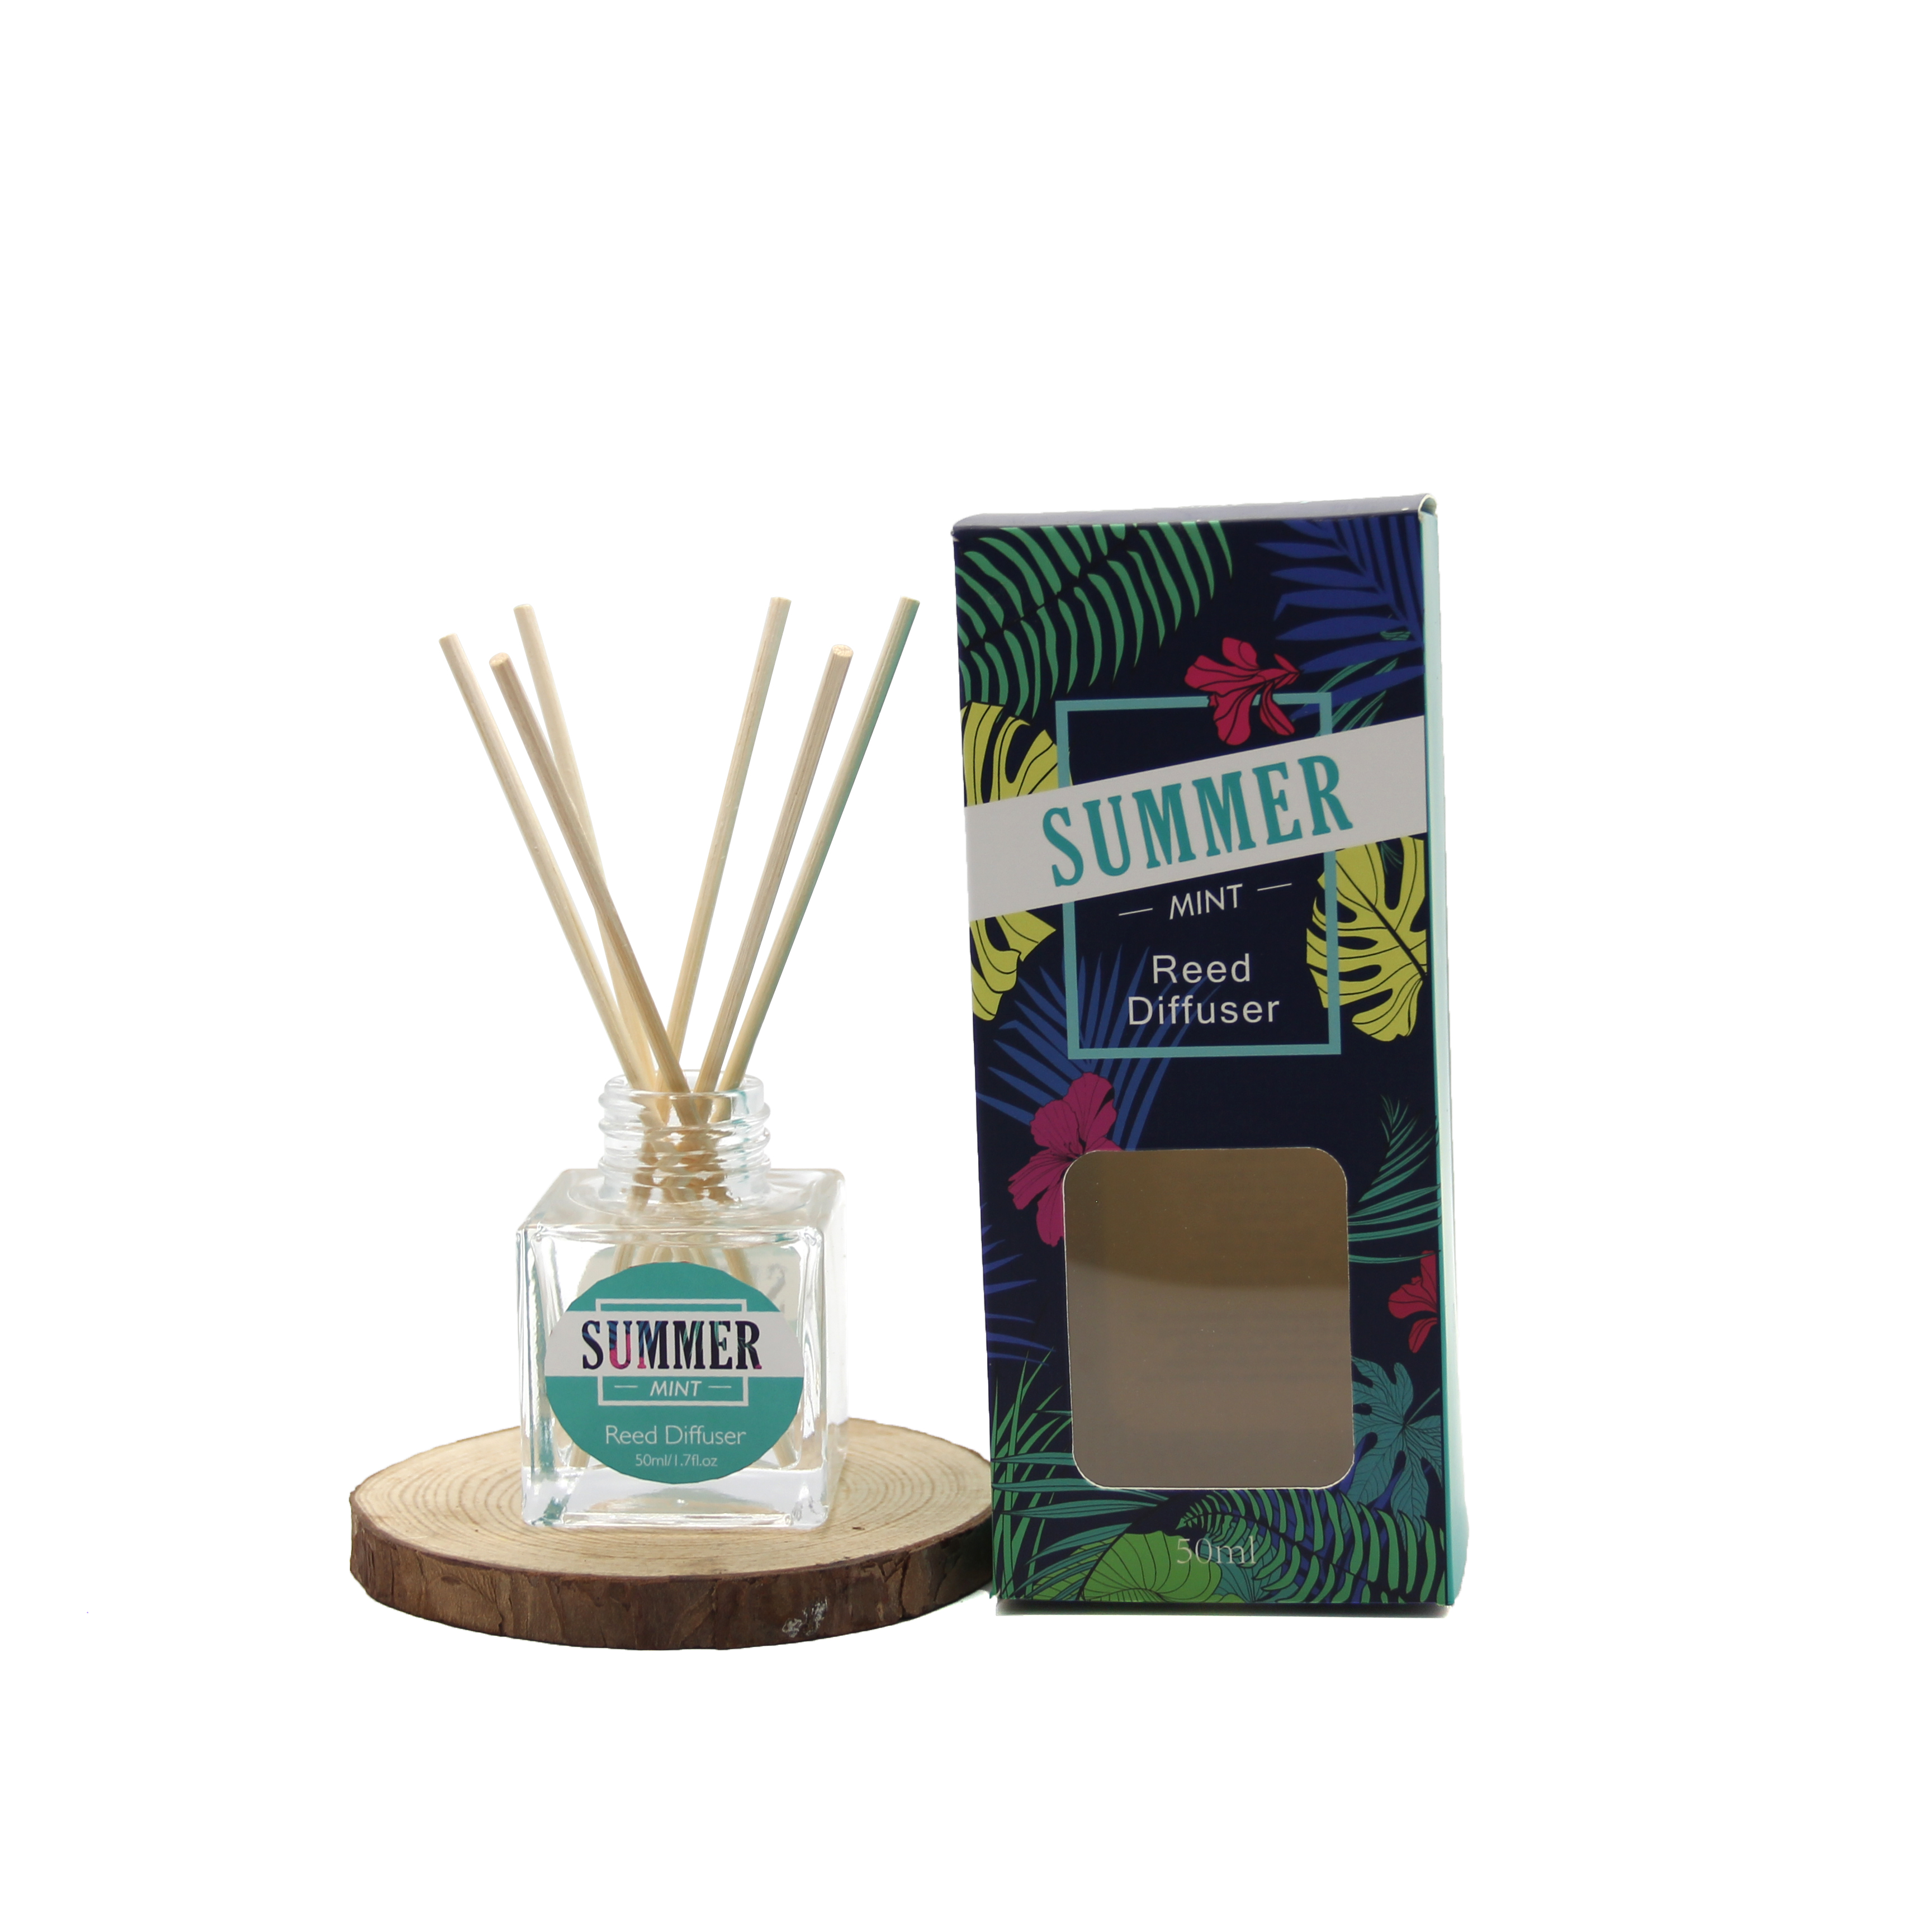 Custom Design Glazen Fles mint reed diffuser set